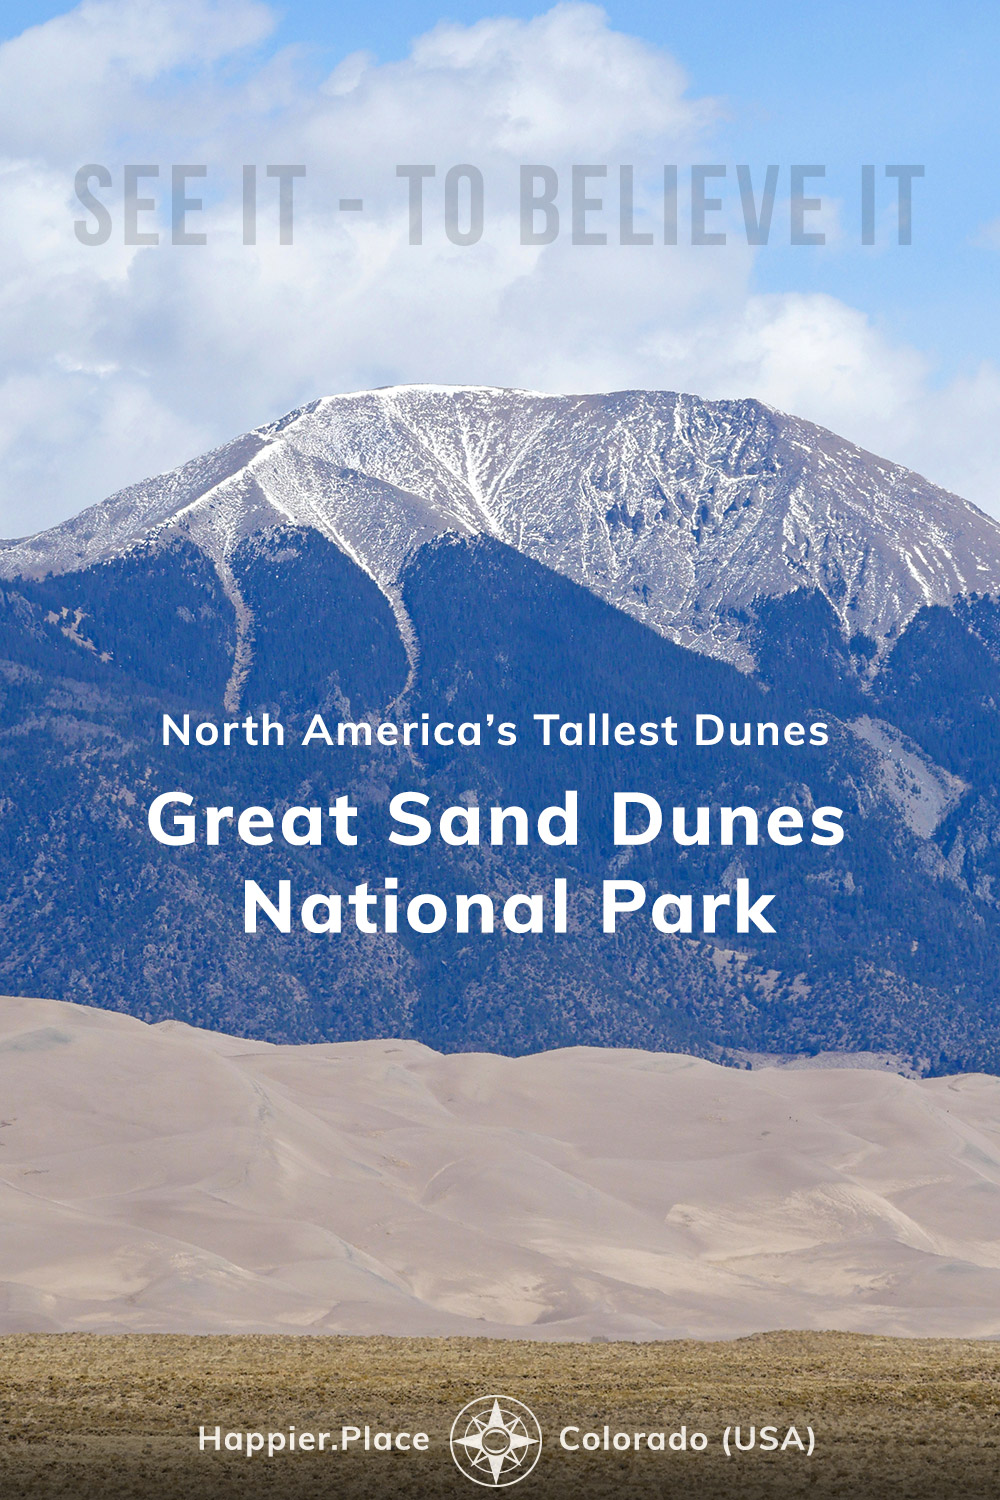 Great Sand Dunes National Park, See it to believe it, North America's tallest dunes, Colorado, mountains, happierplace